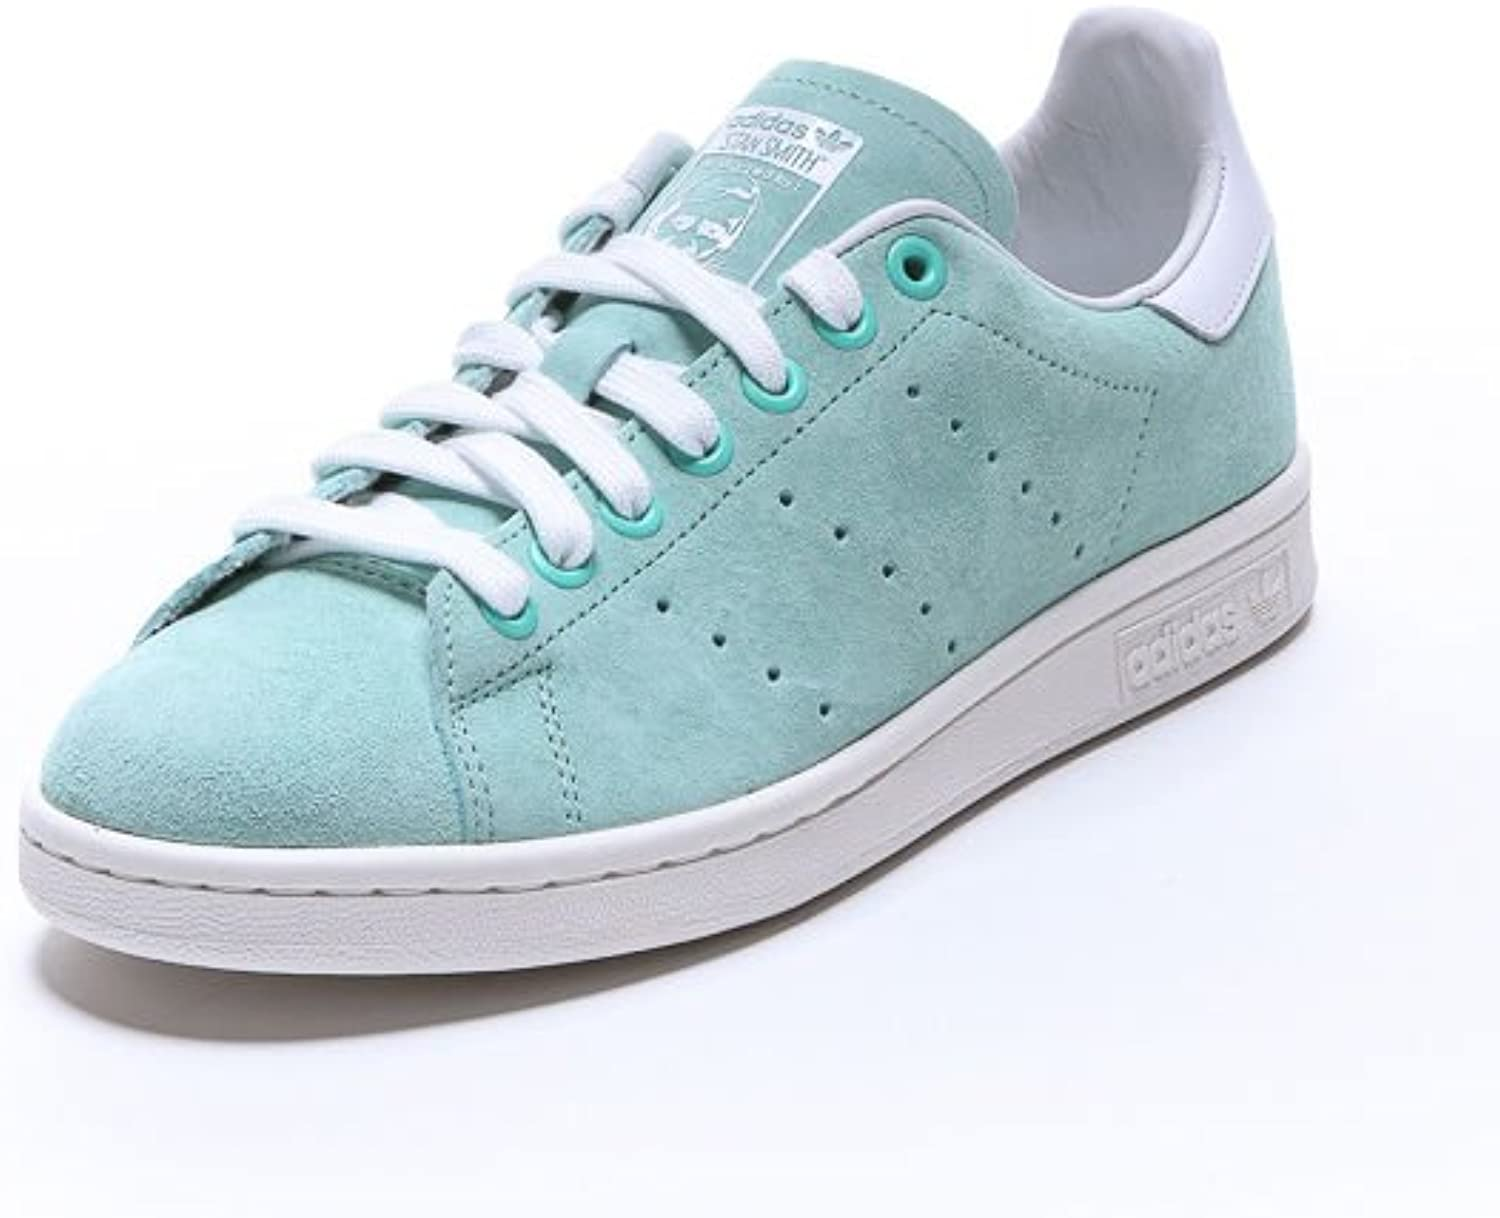 Adidas Stan Smith Trainers Green